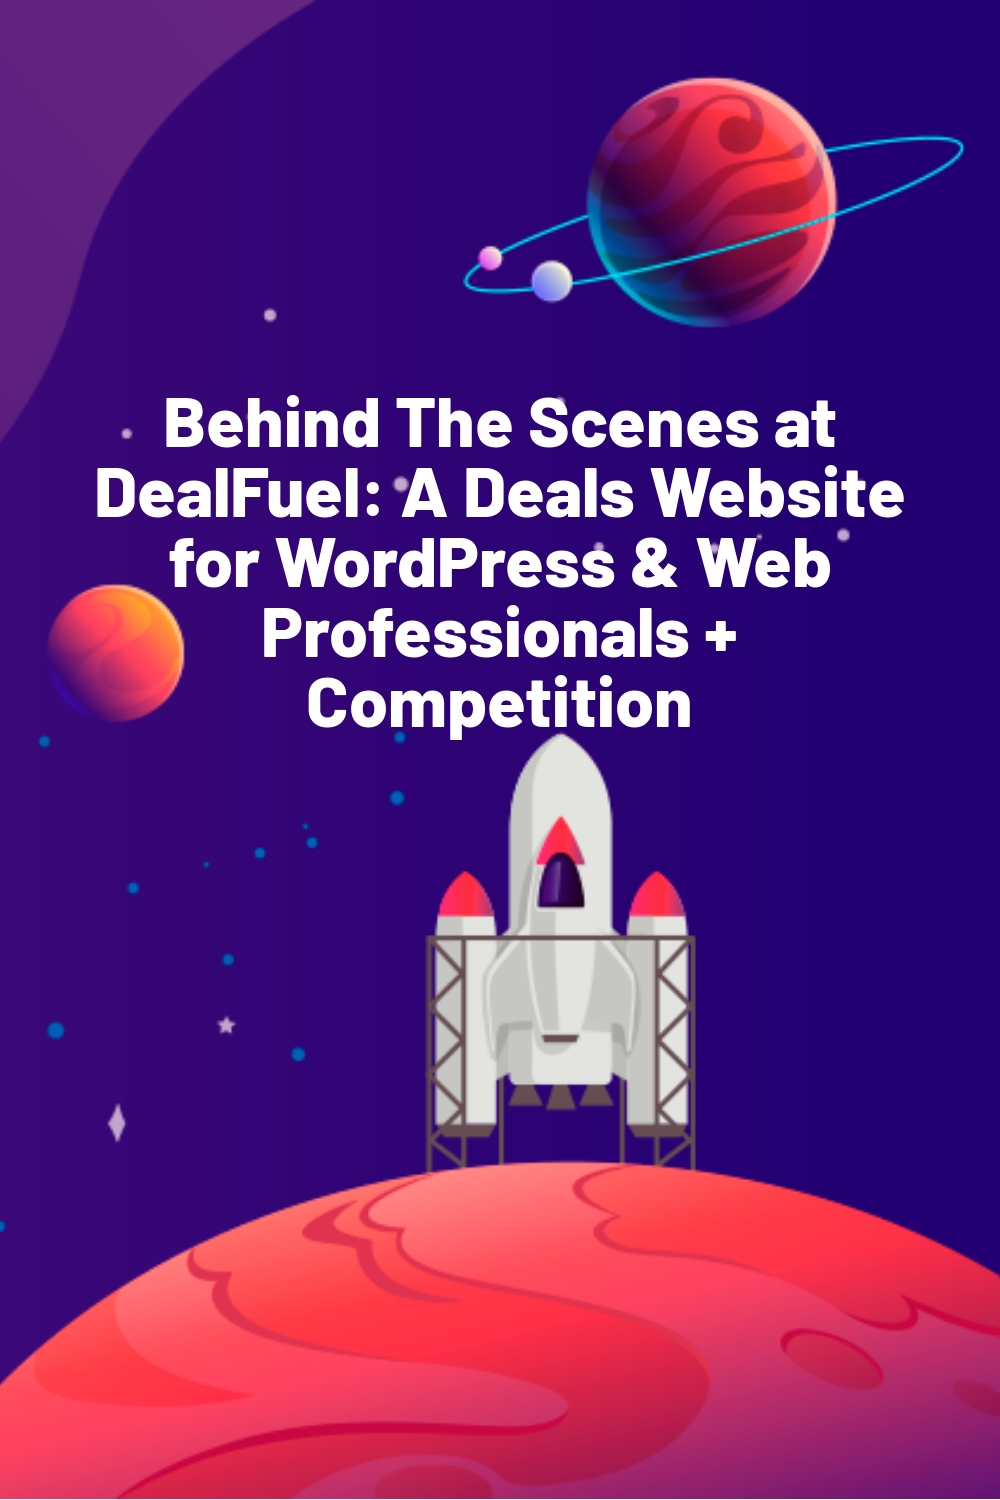 Behind The Scenes at DealFuel: A Deals Website for WordPress & Web Professionals + Competition